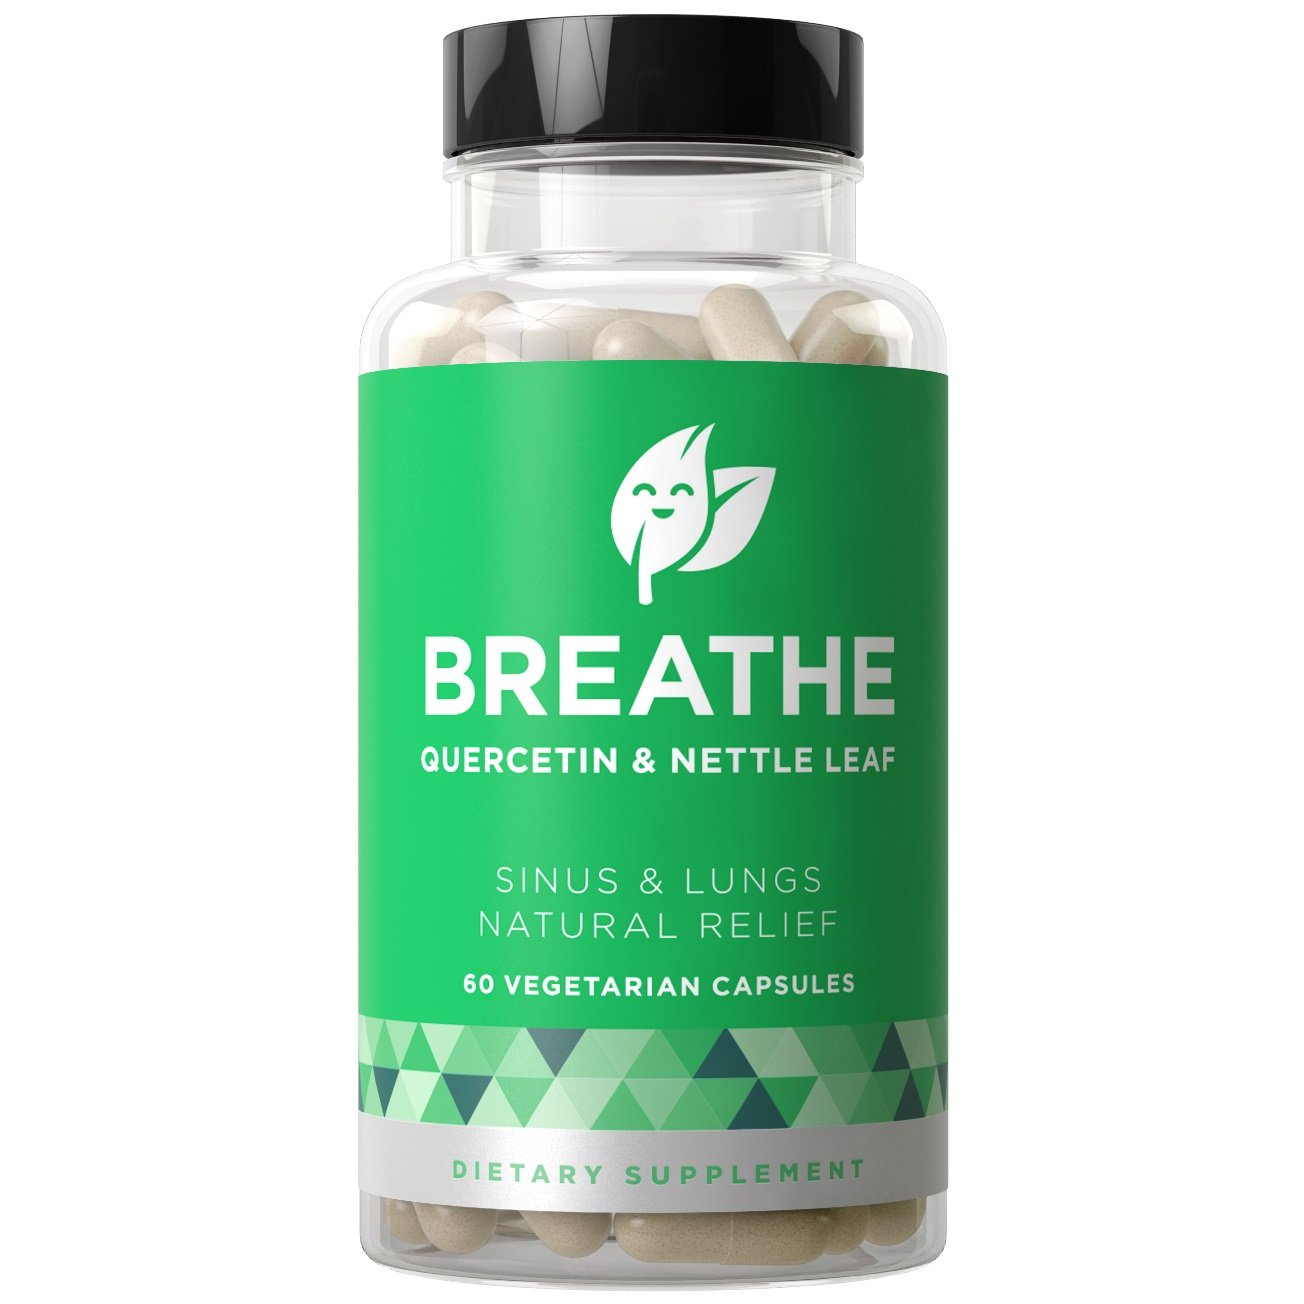 BREATHE Sinus & Lungs Respiratory Relief - Non-Drowsy Breathing Support to Fight Allergies, Nasal Irritation, Bronchial Inflammation - Quercetin & Nettle Leaf - 60 Vegetarian Soft Capsules